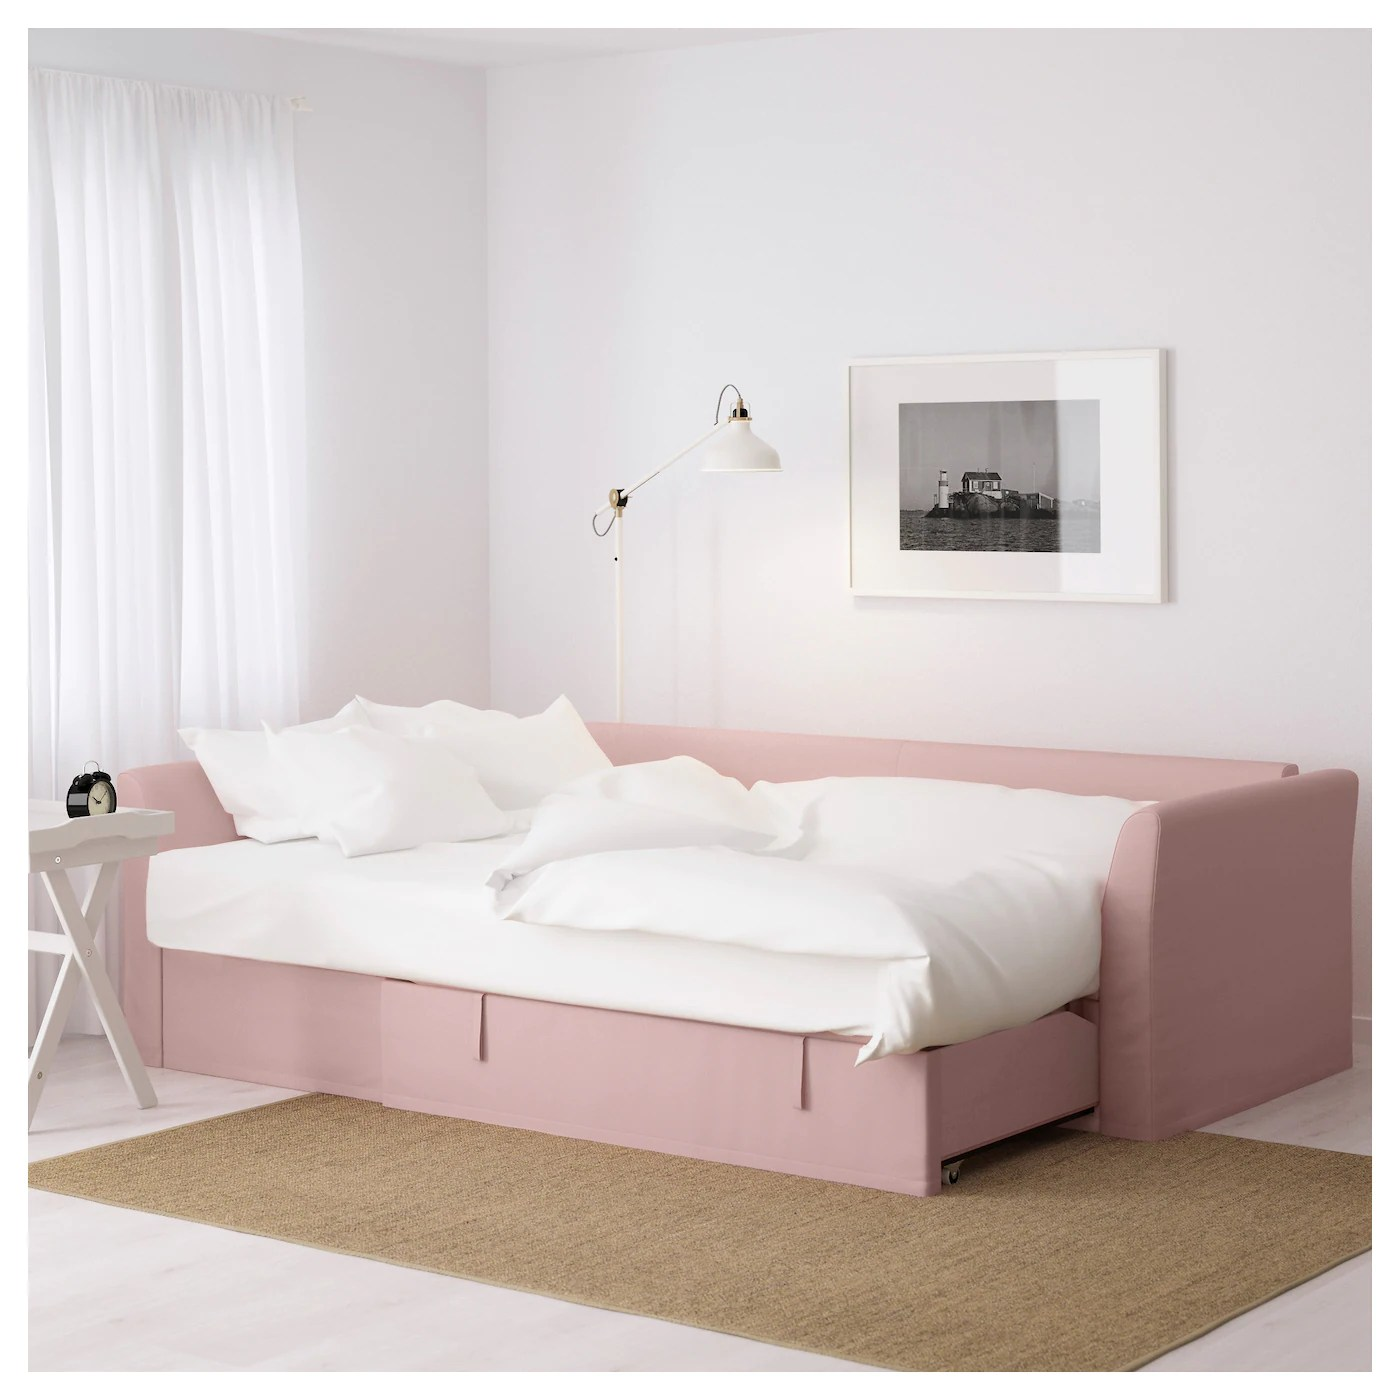 light pink sofa bed luxury leather sofas from china holmsund corner ransta ikea